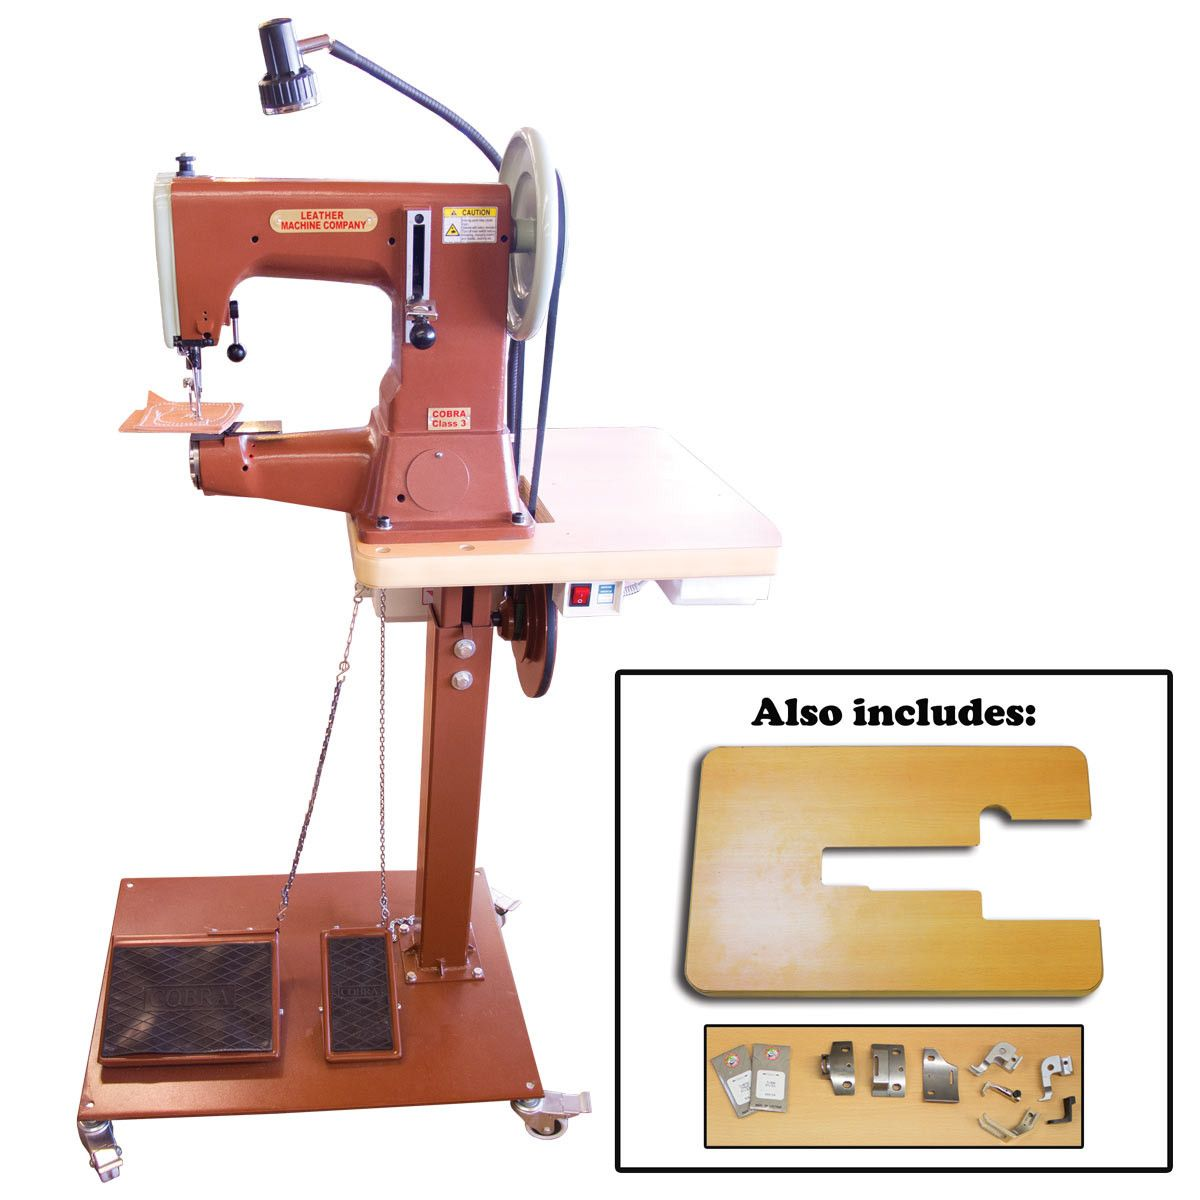 Leather sewing machines are an investment. Make sure you ...